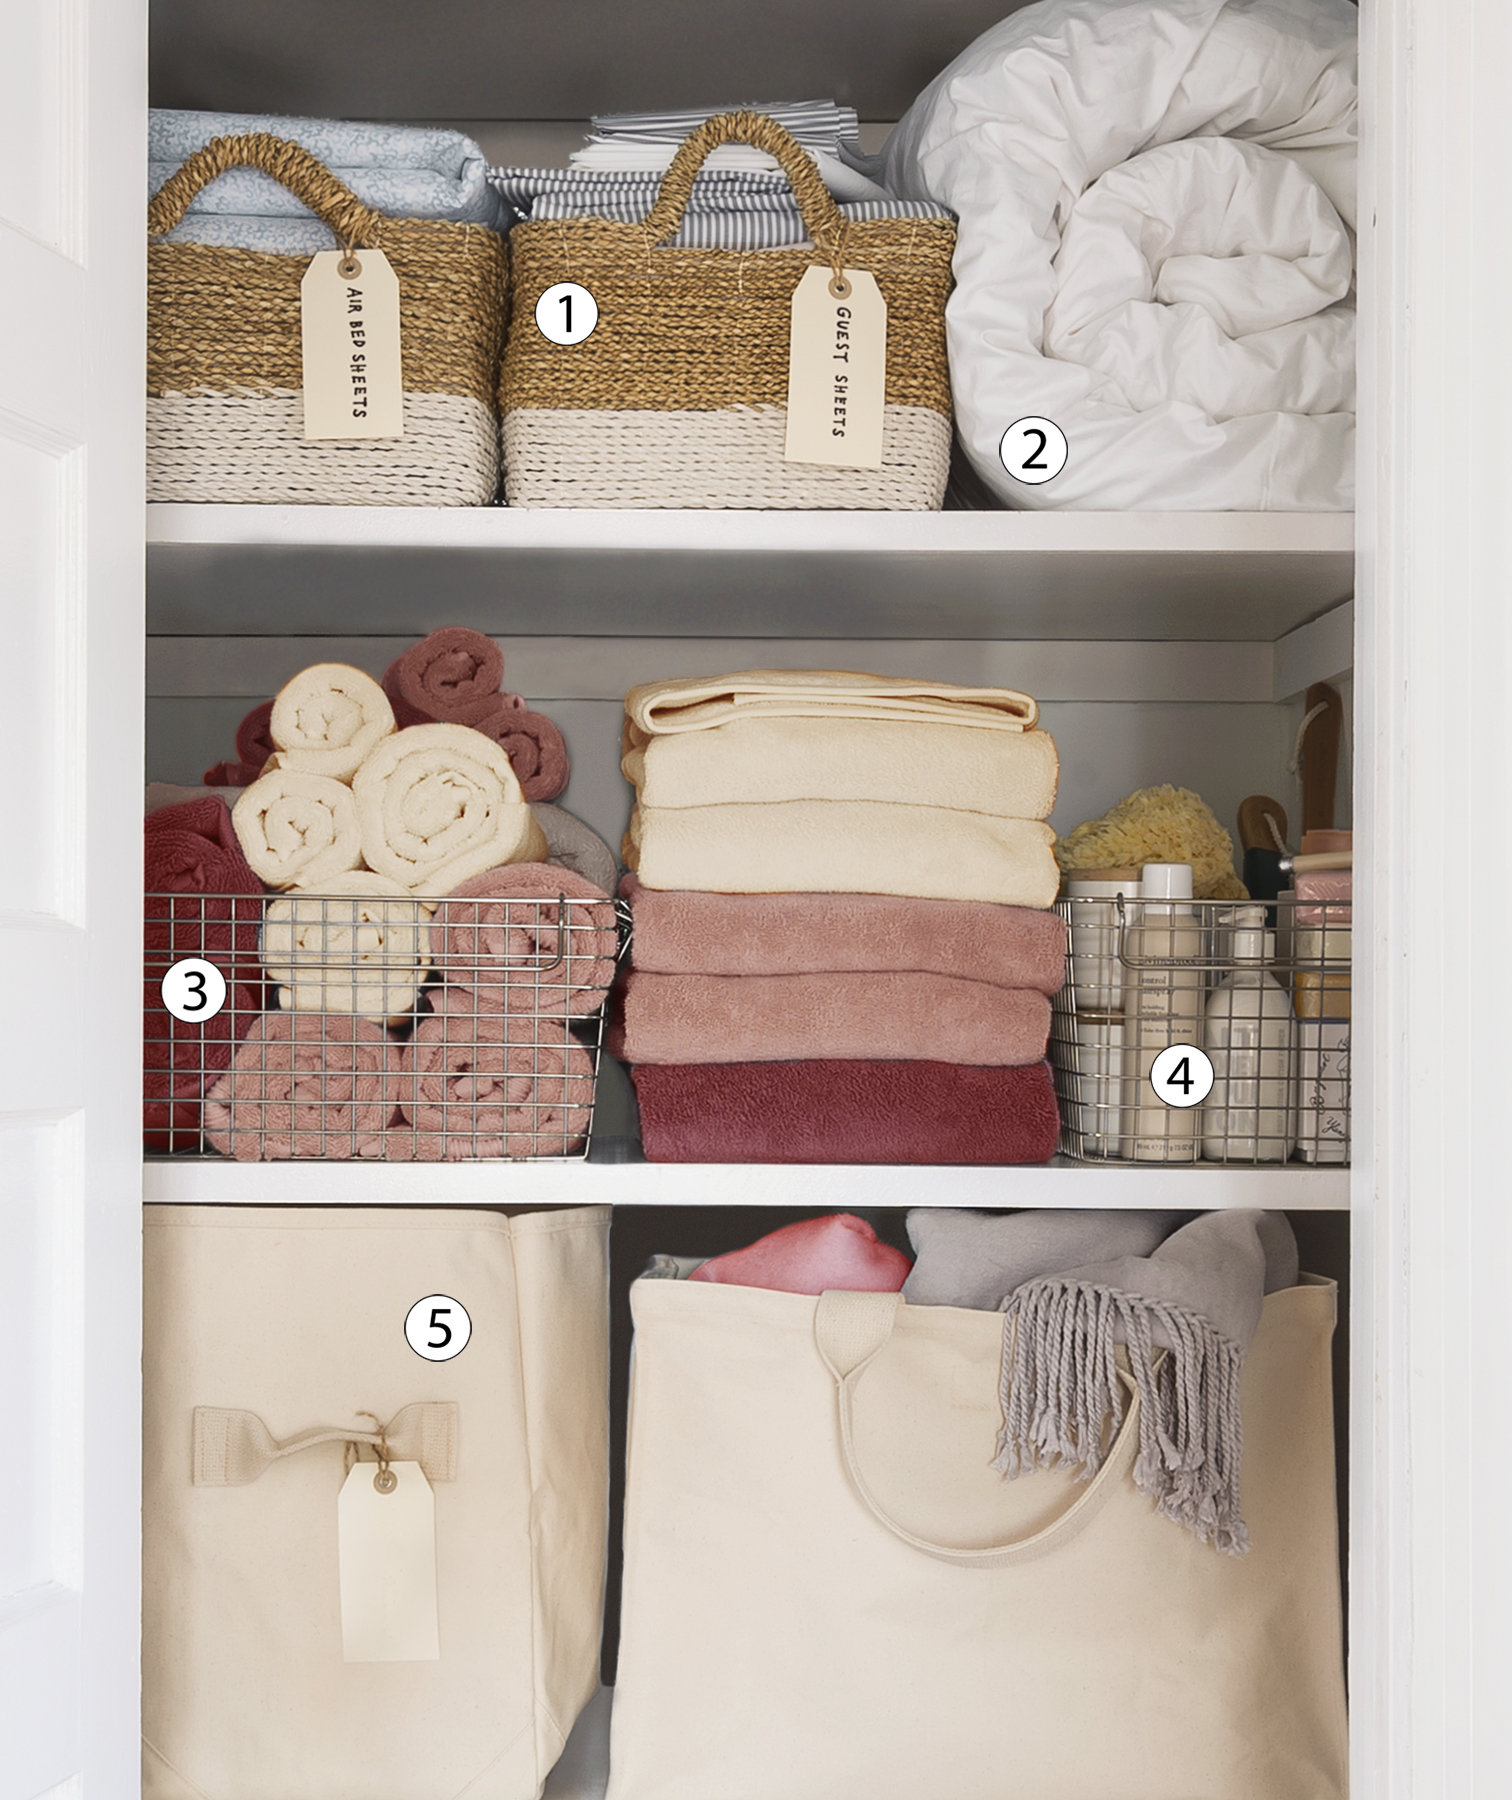 How To Organize Linen Closet. Organizing